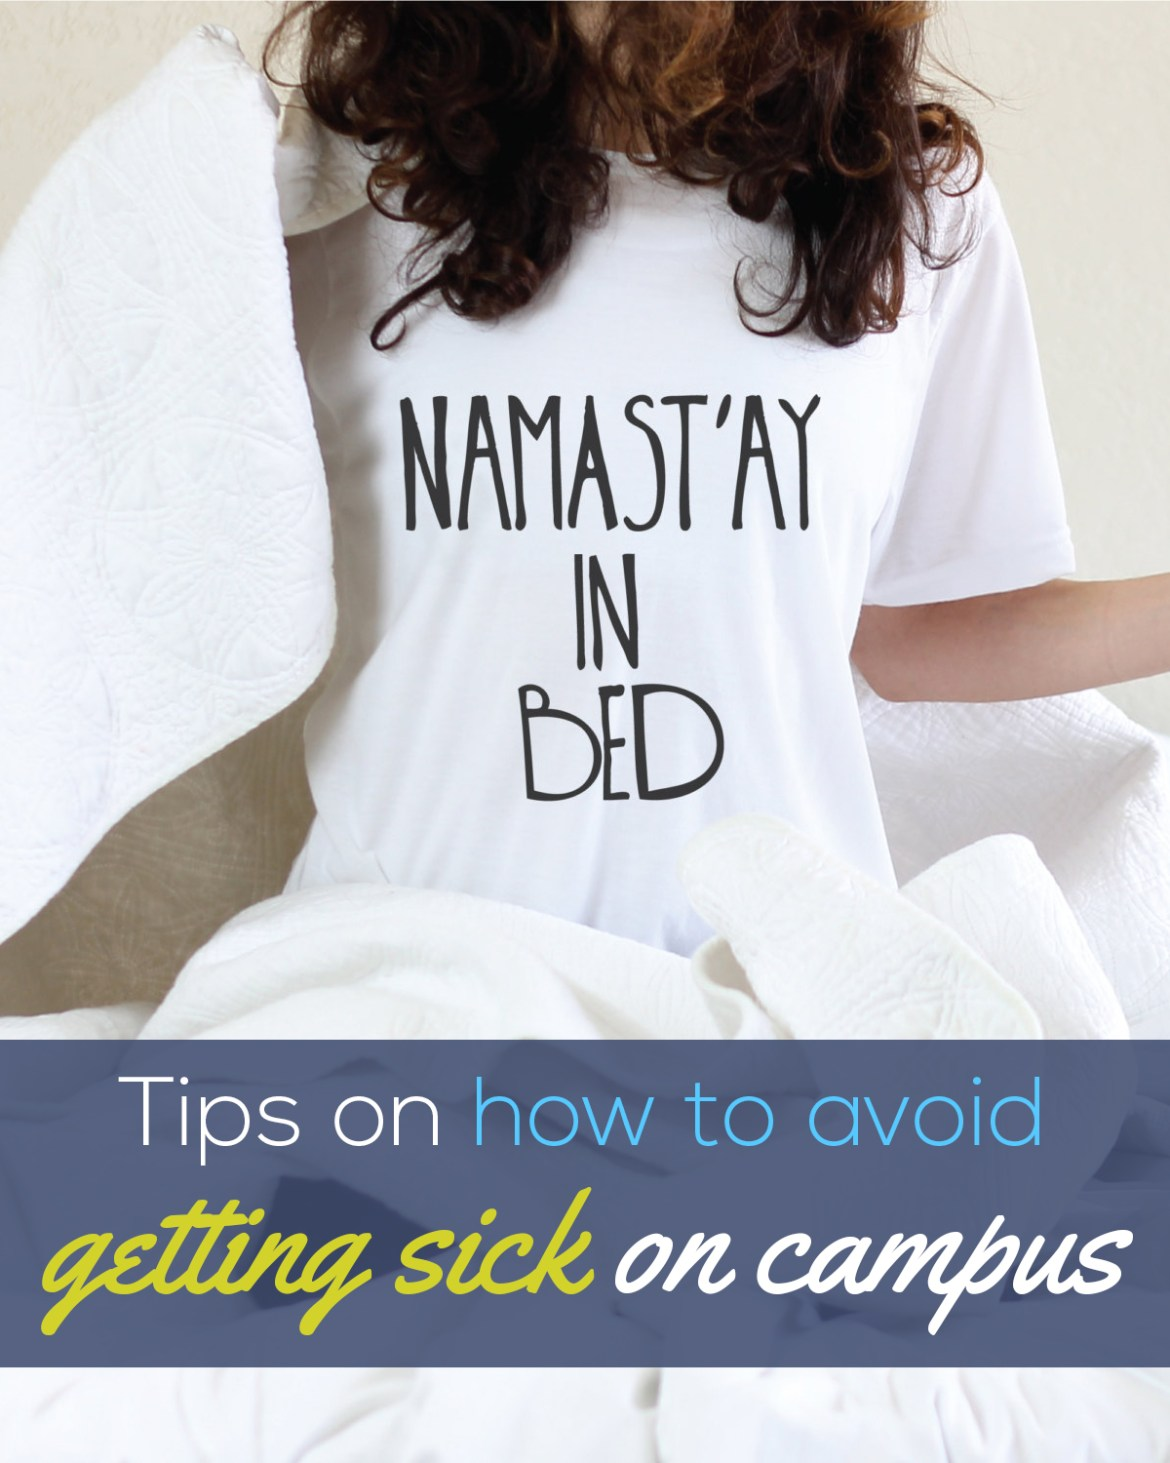 Don't get sick on campus this semester!